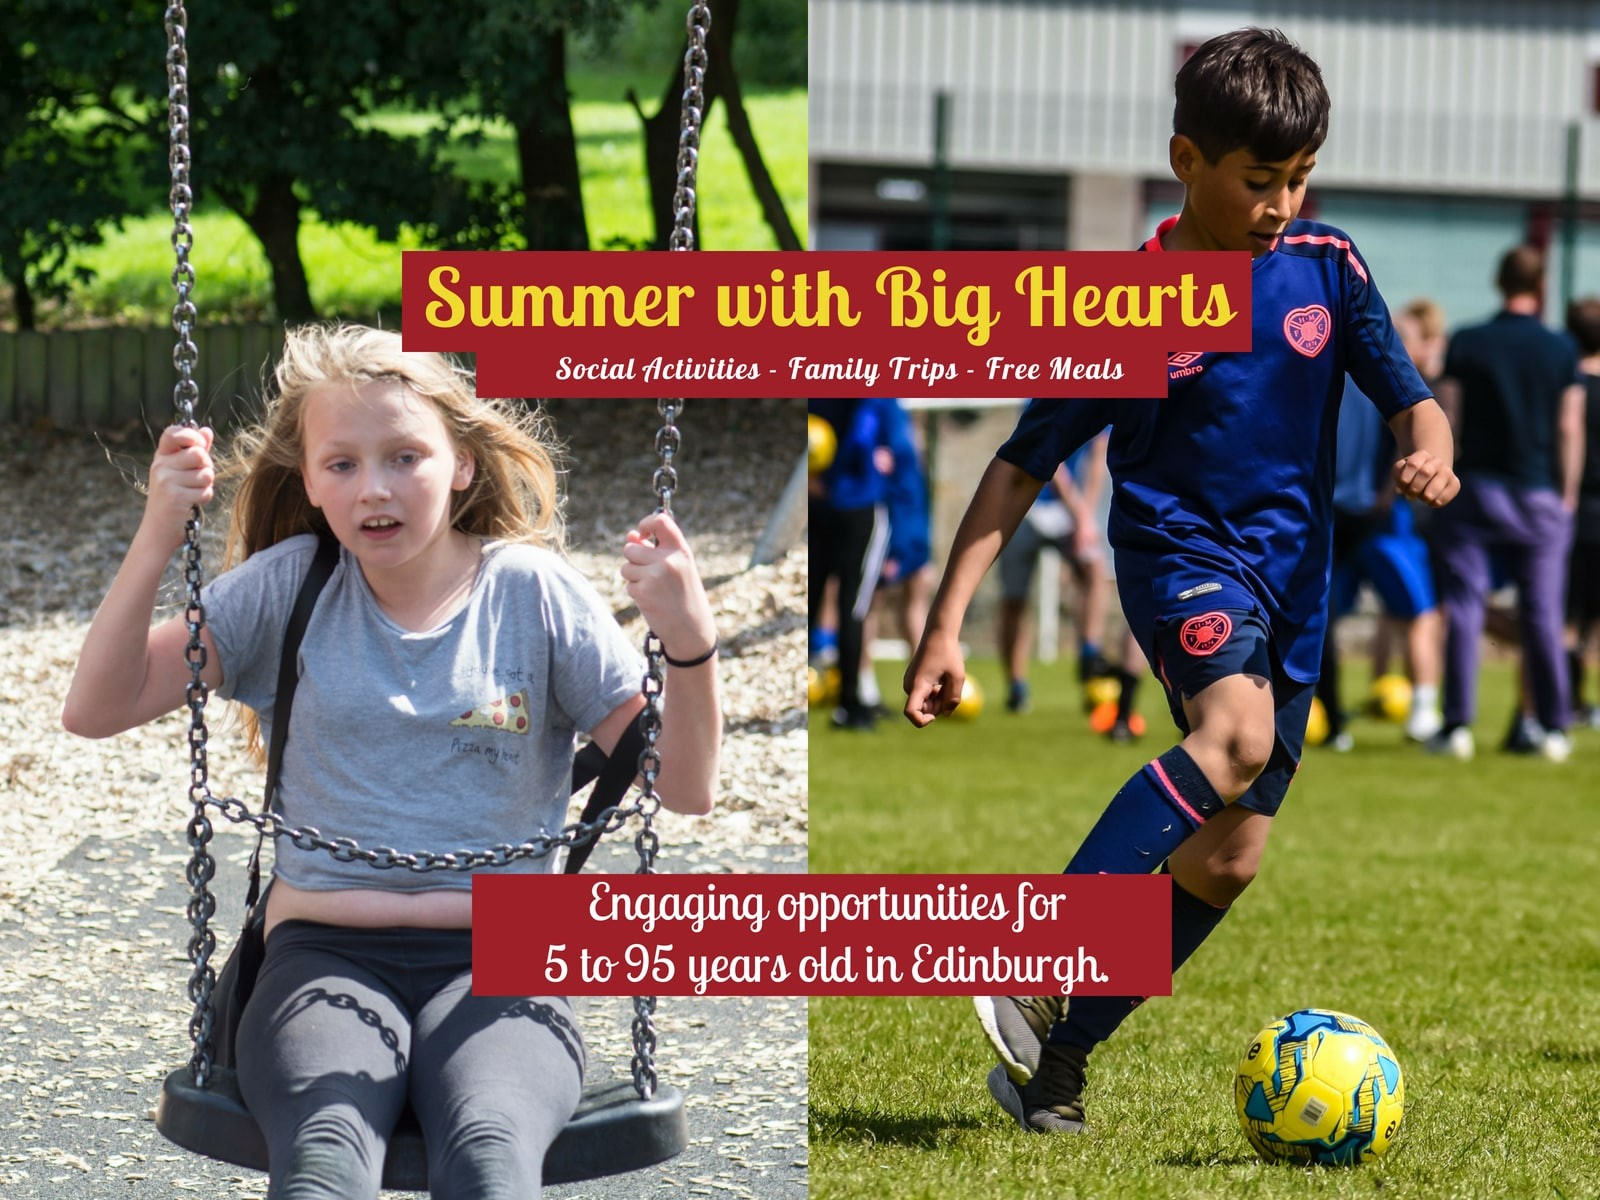 » Summer with Big Hearts: engaging activities for 5 to 95 years old!